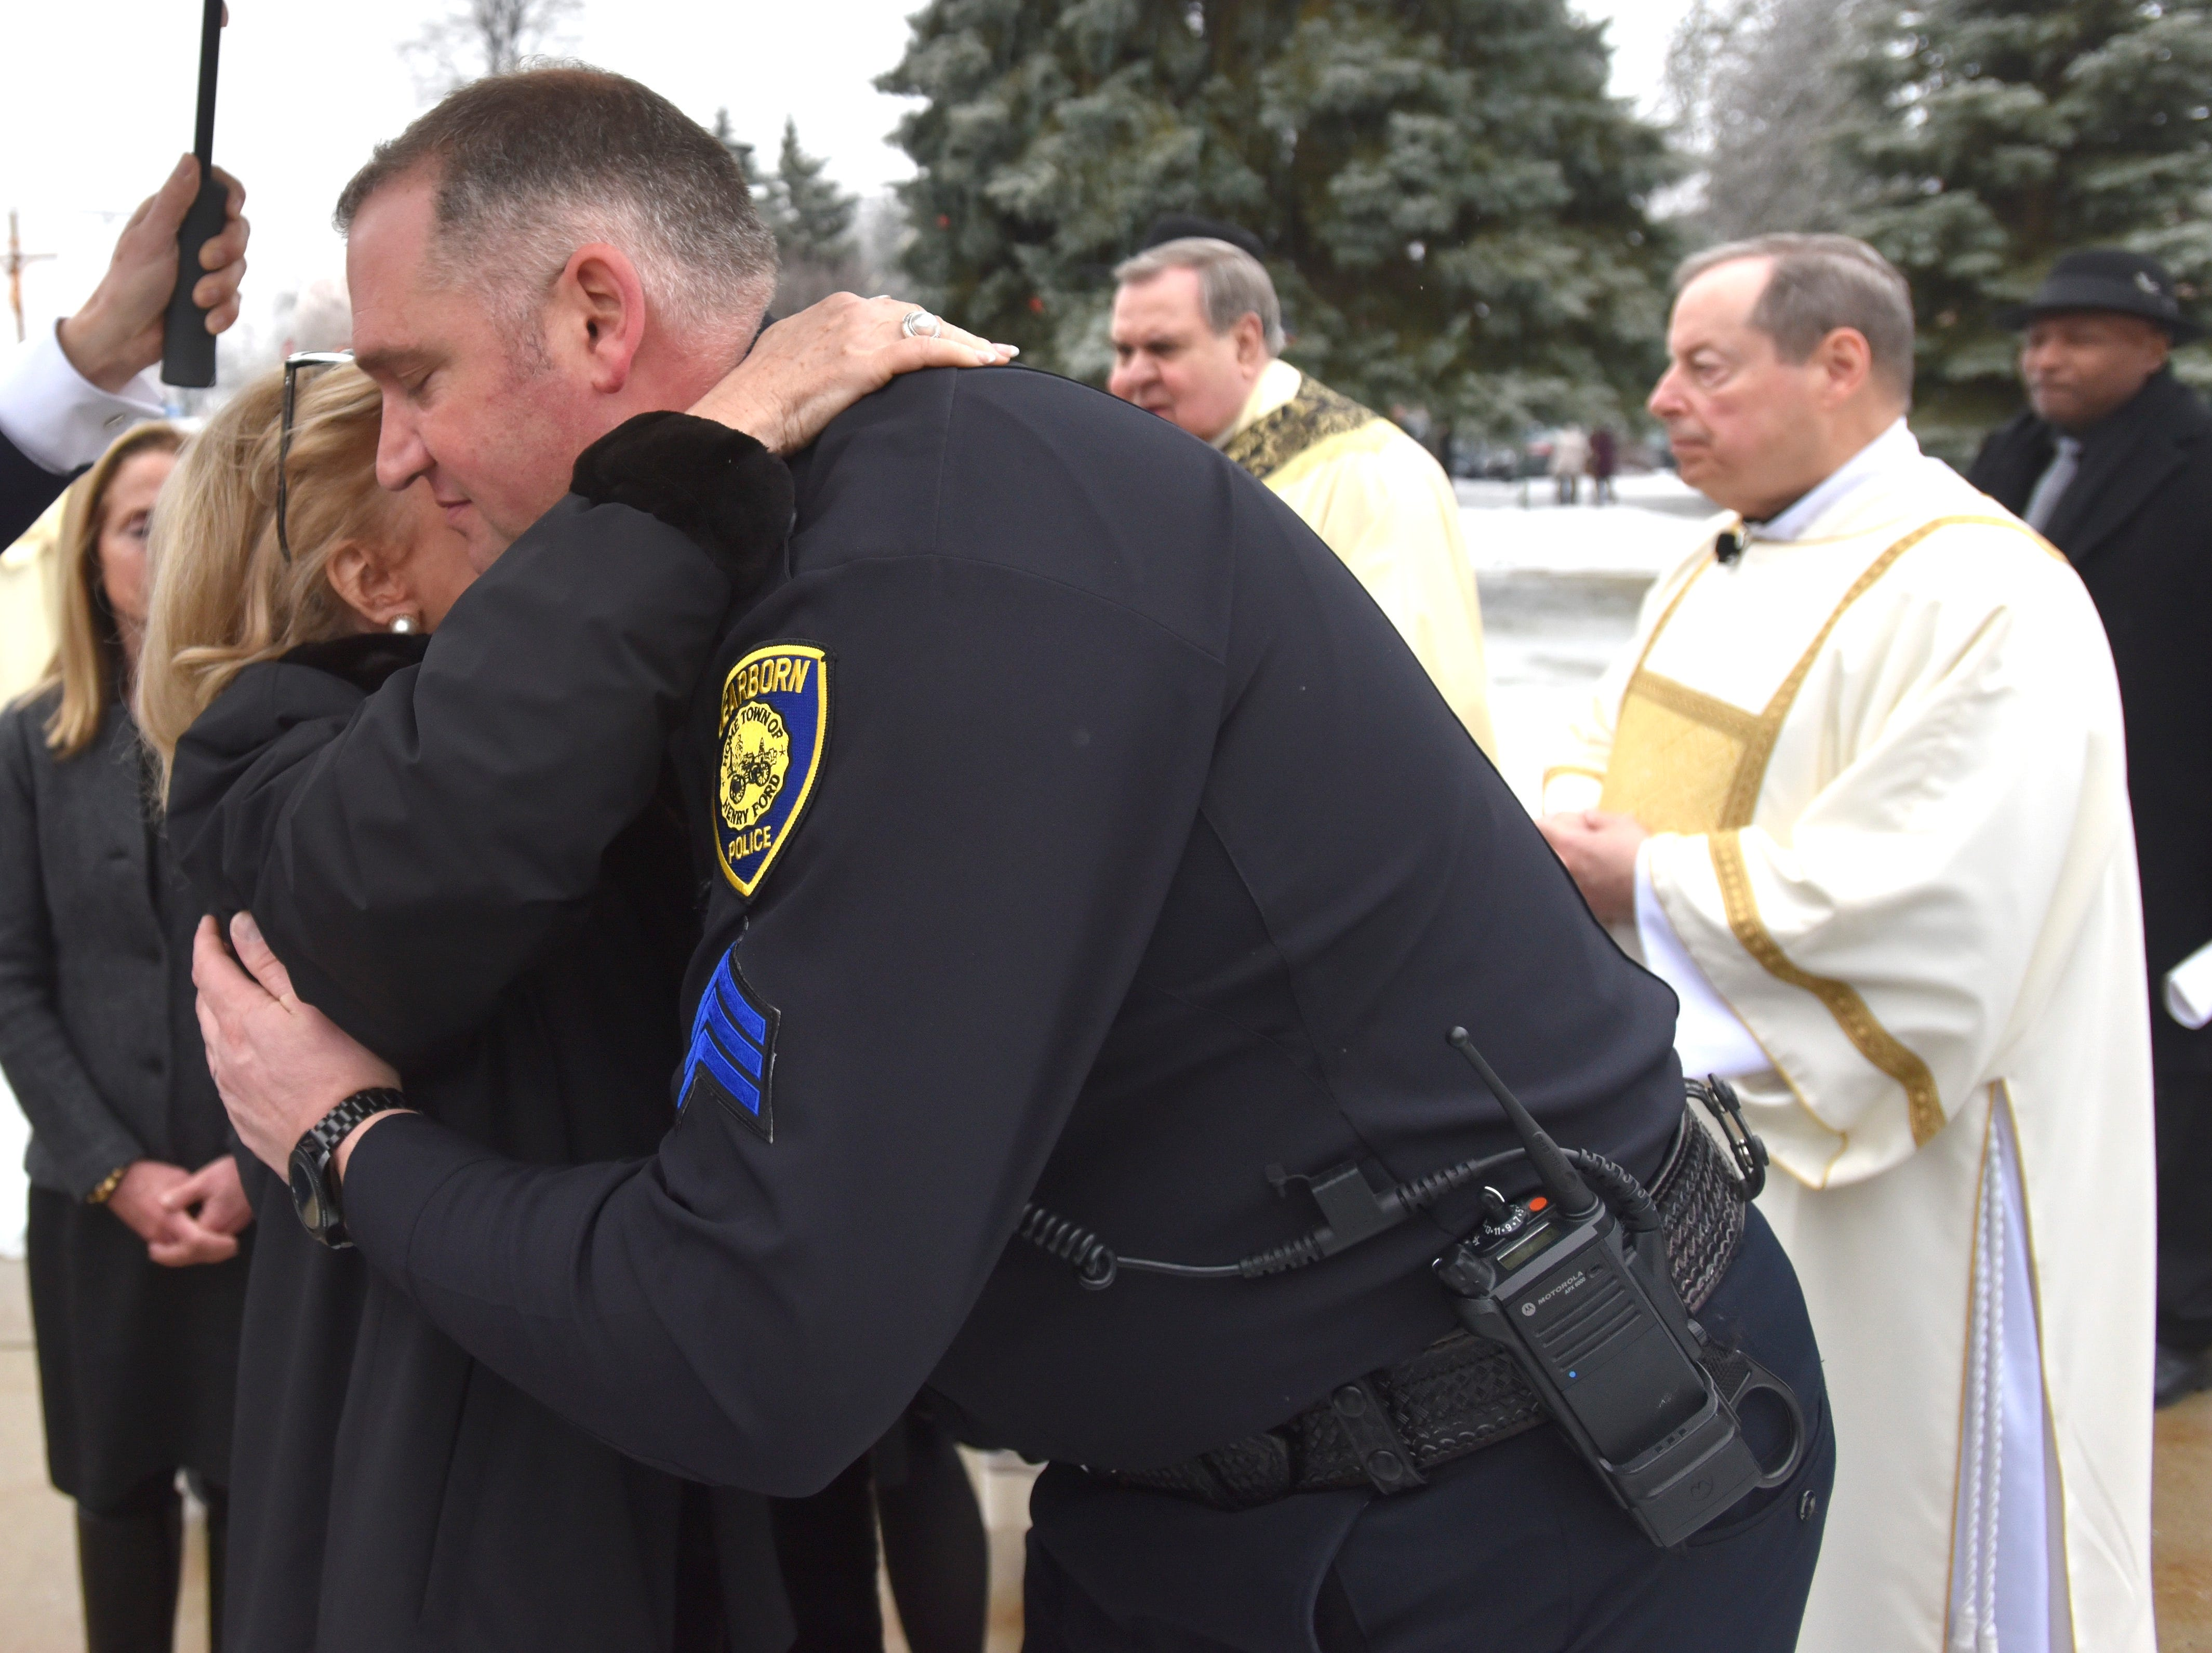 Dearborn Police Sgt. Jason Skoczylas hugs U.S. Rep. Debbie Dingell before the hearse leaves.